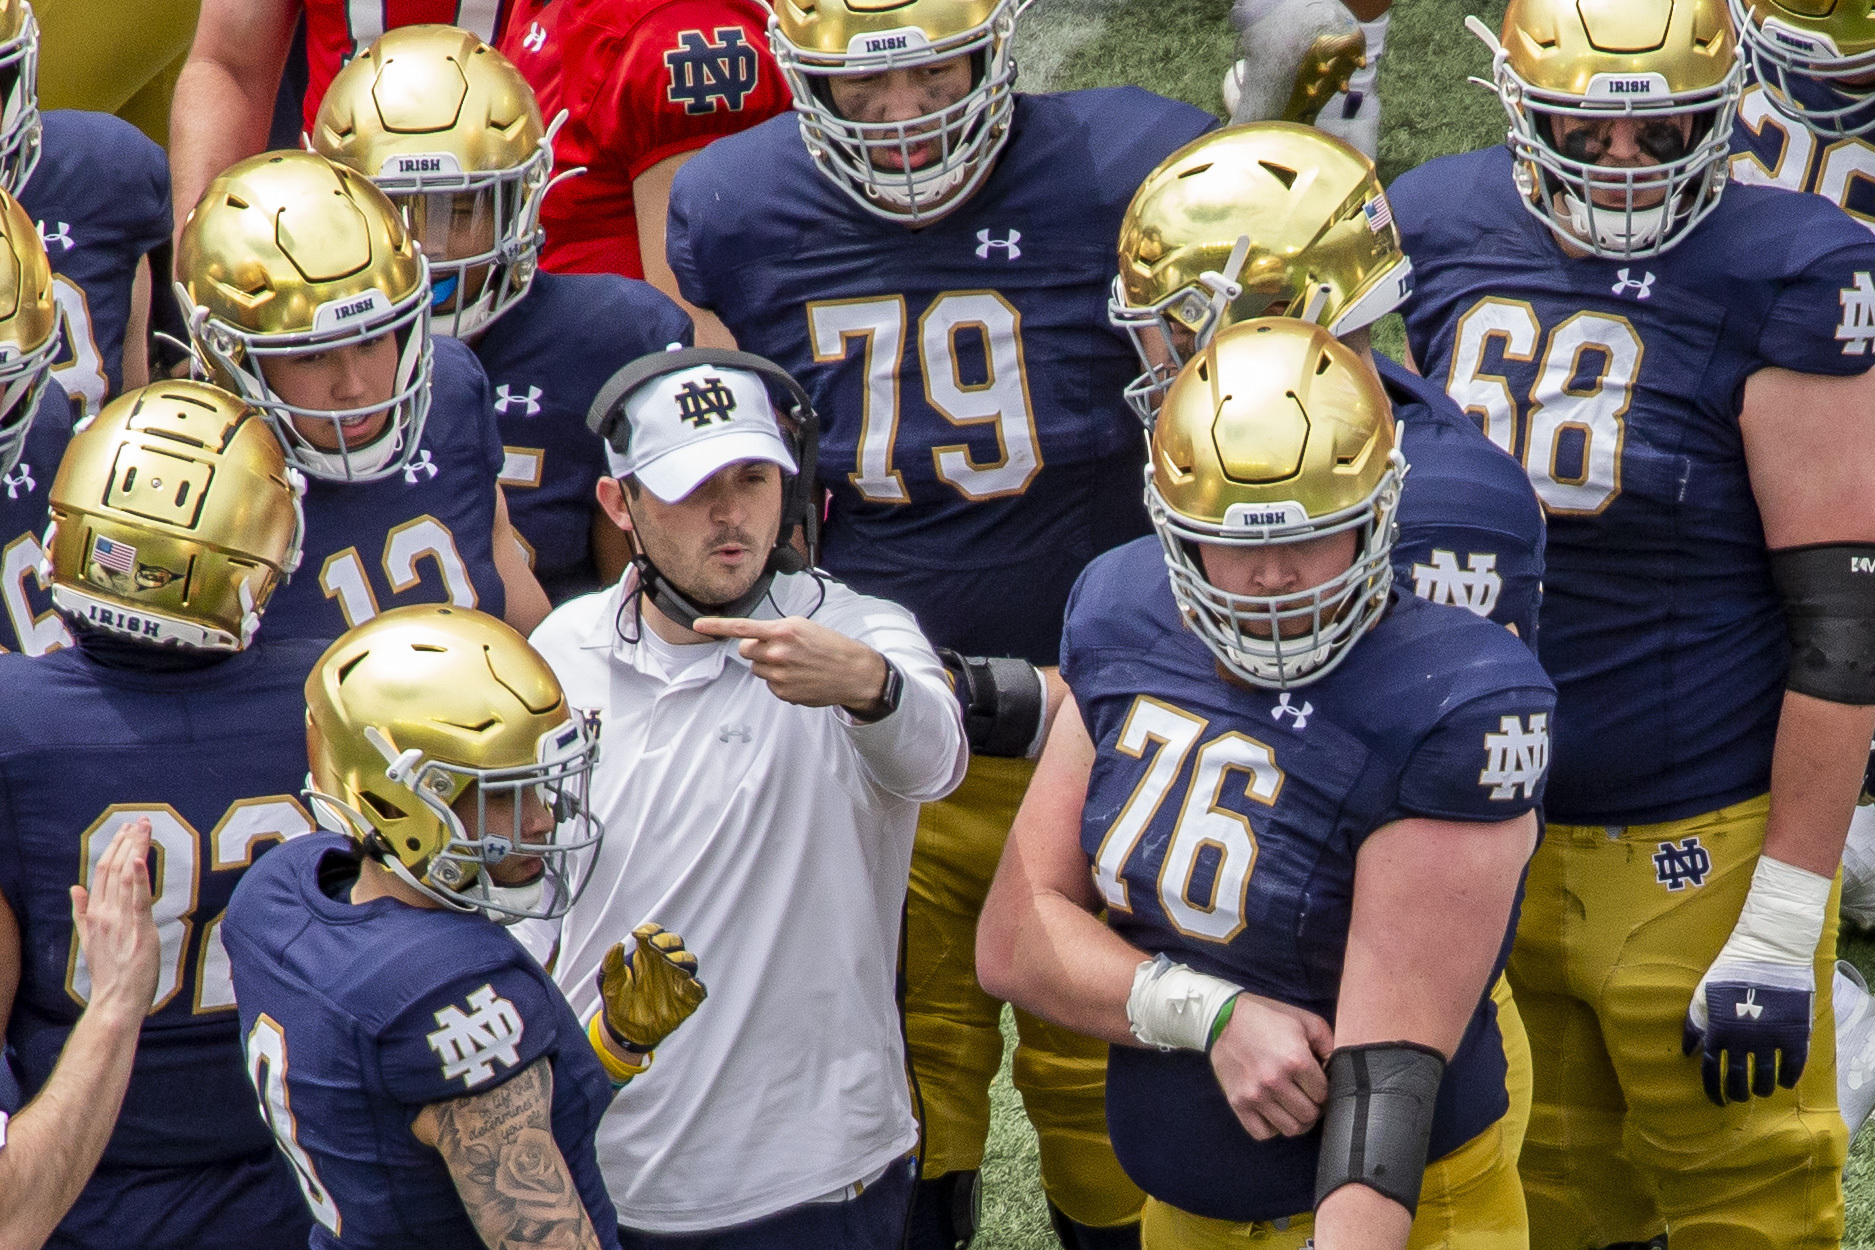 Notre Dame will help kick off ESPN's college football season coverage.